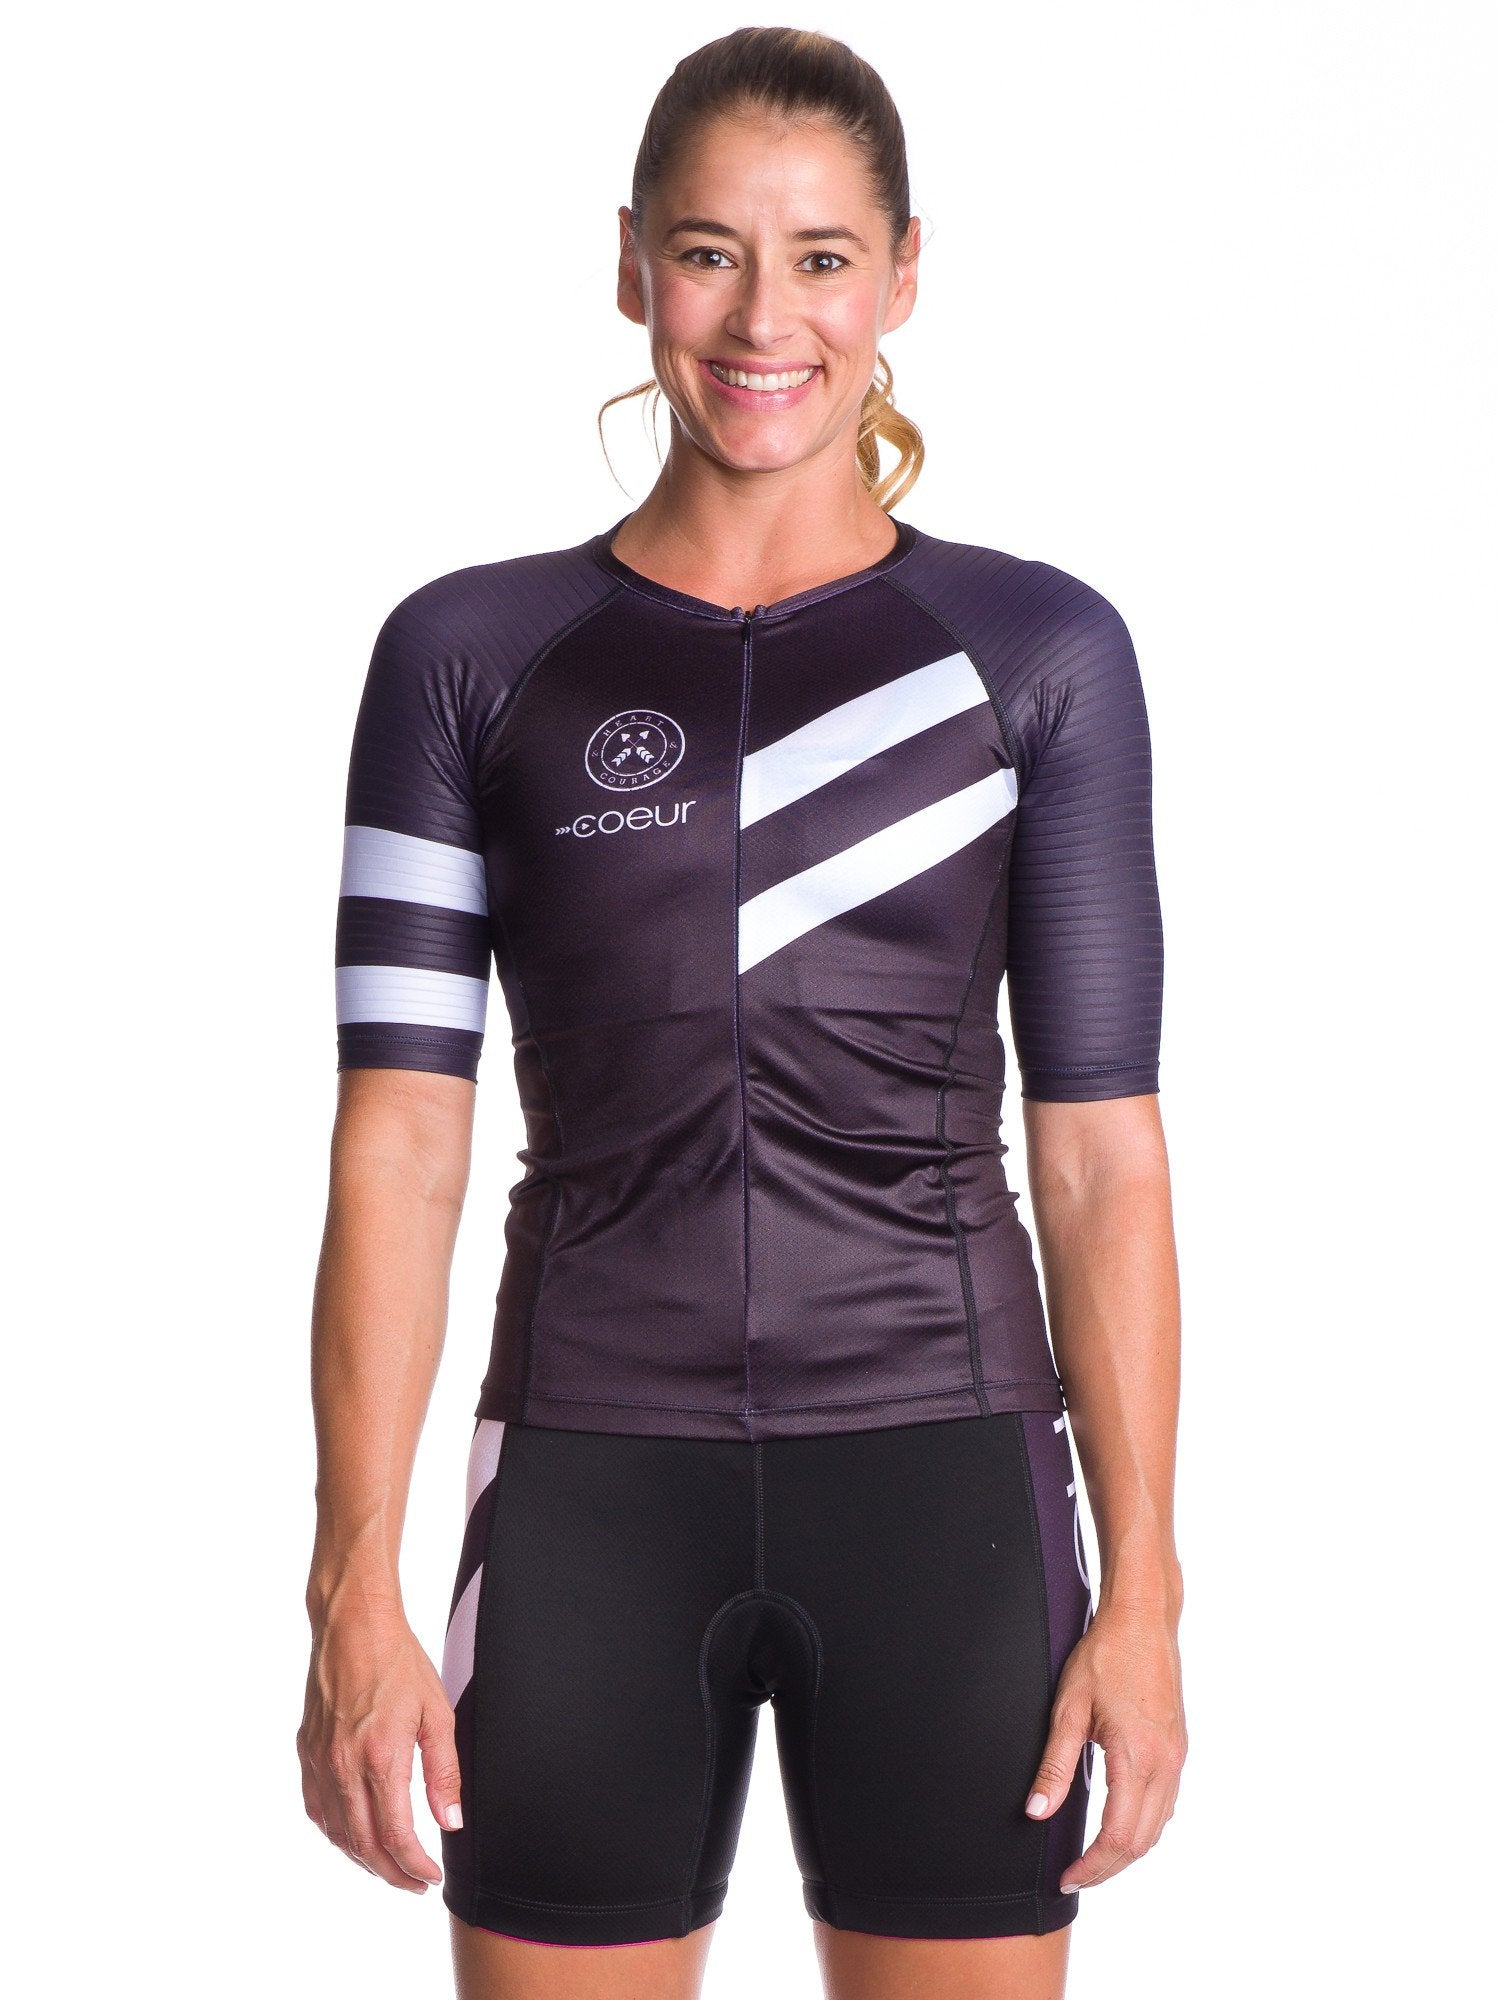 Coeur Sports Sleeved Triathlon Speed Jersey Zele Women